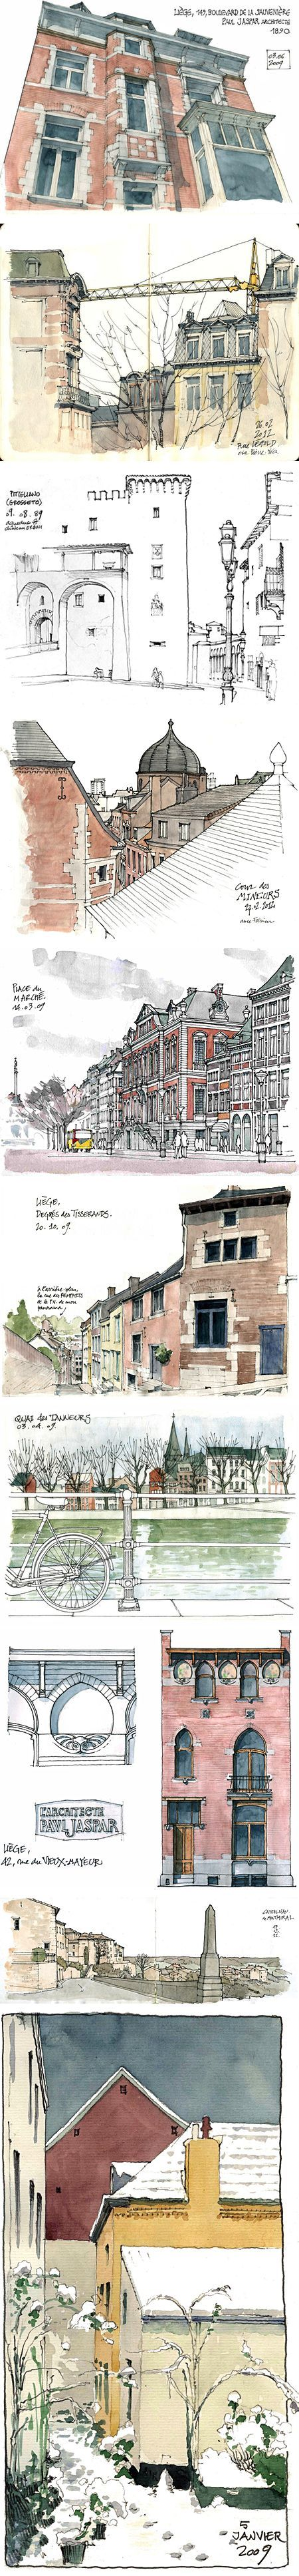 I need to start SKETCHING again!  Gerard Michel - Urban Sketches